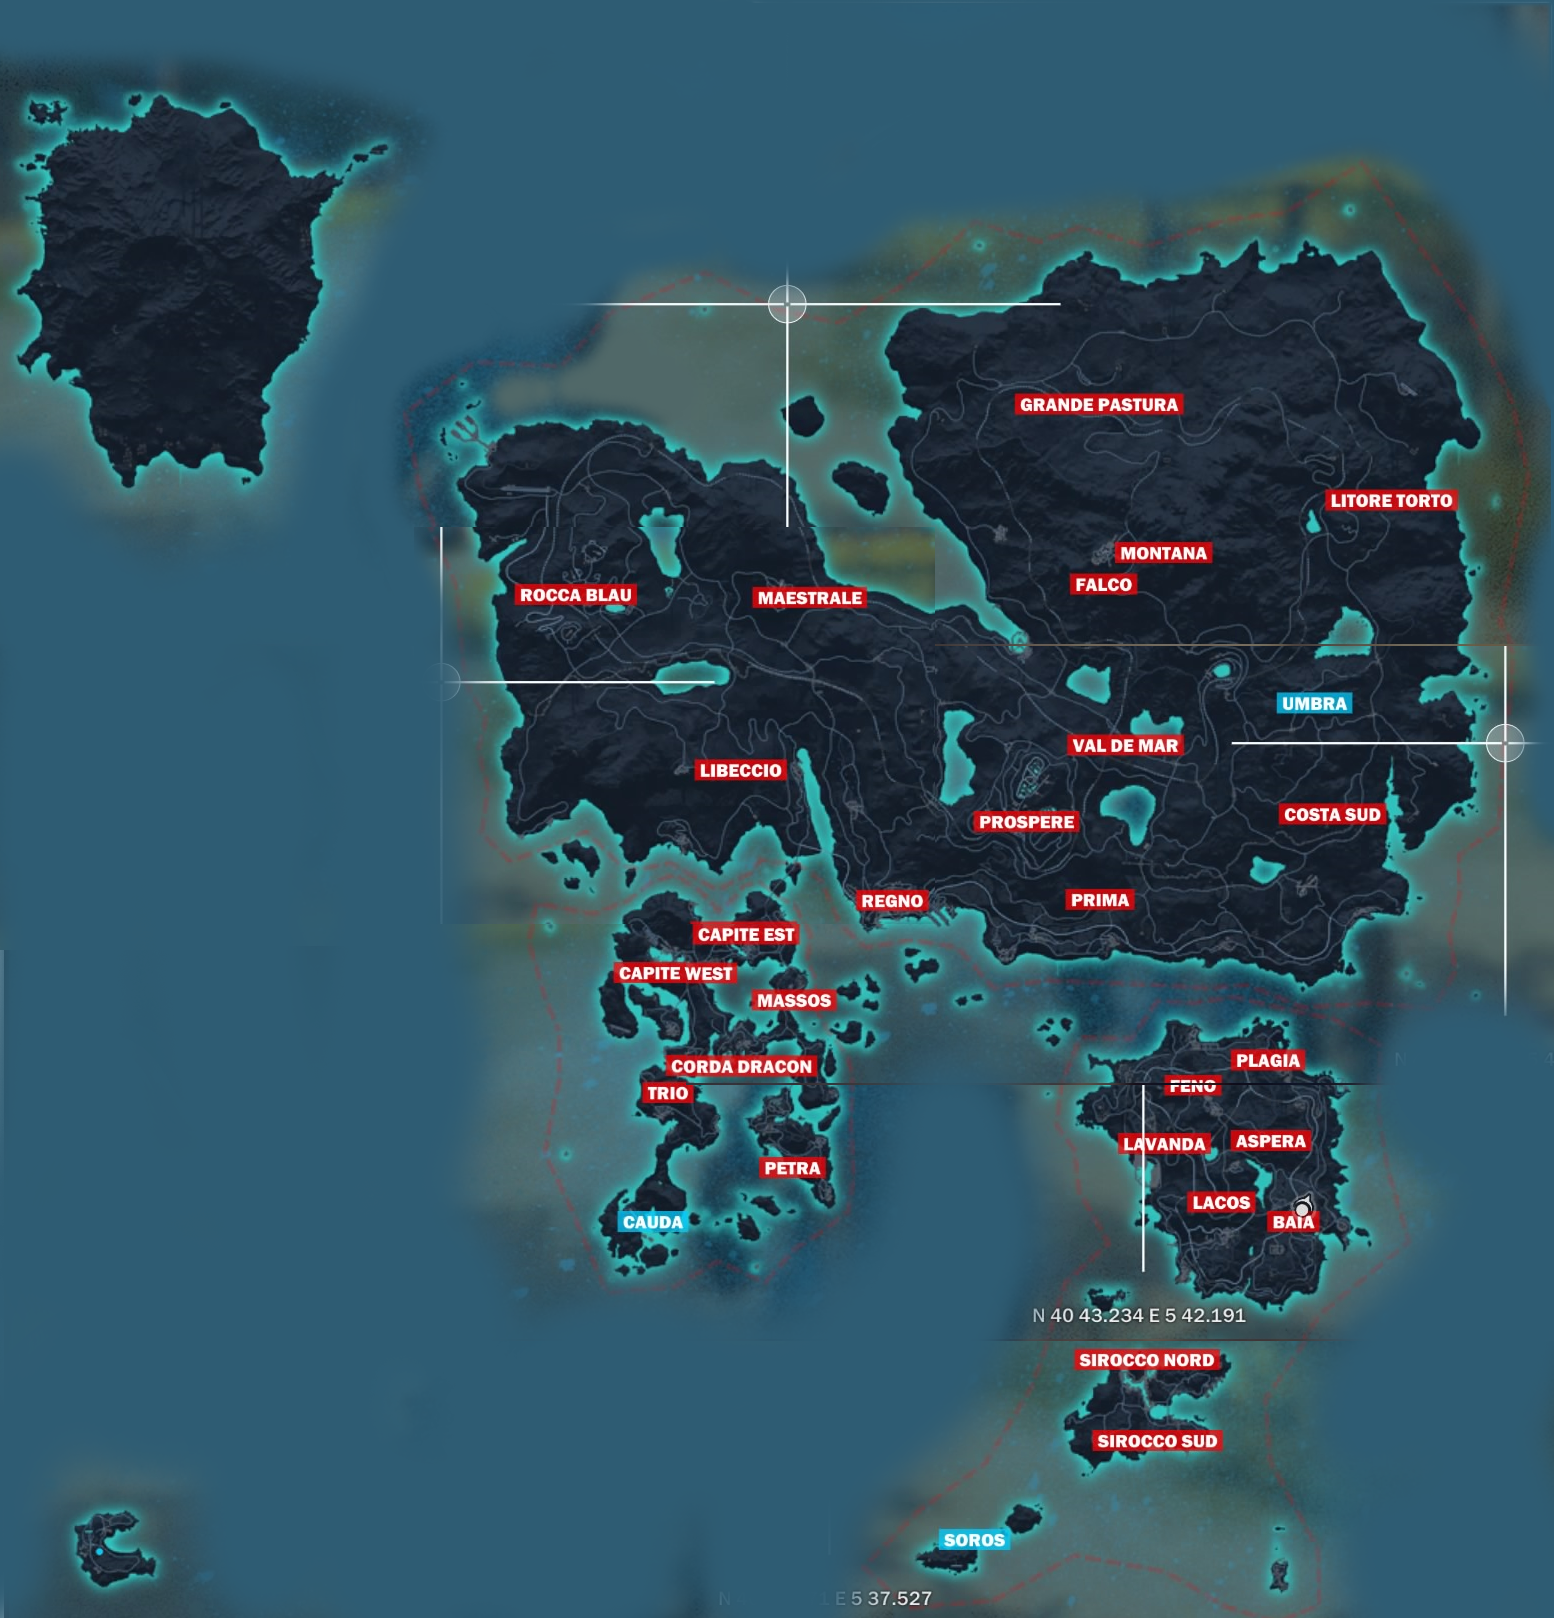 Just Cause 3 Full World Map Size Revealed, Compared With Just Cause 2